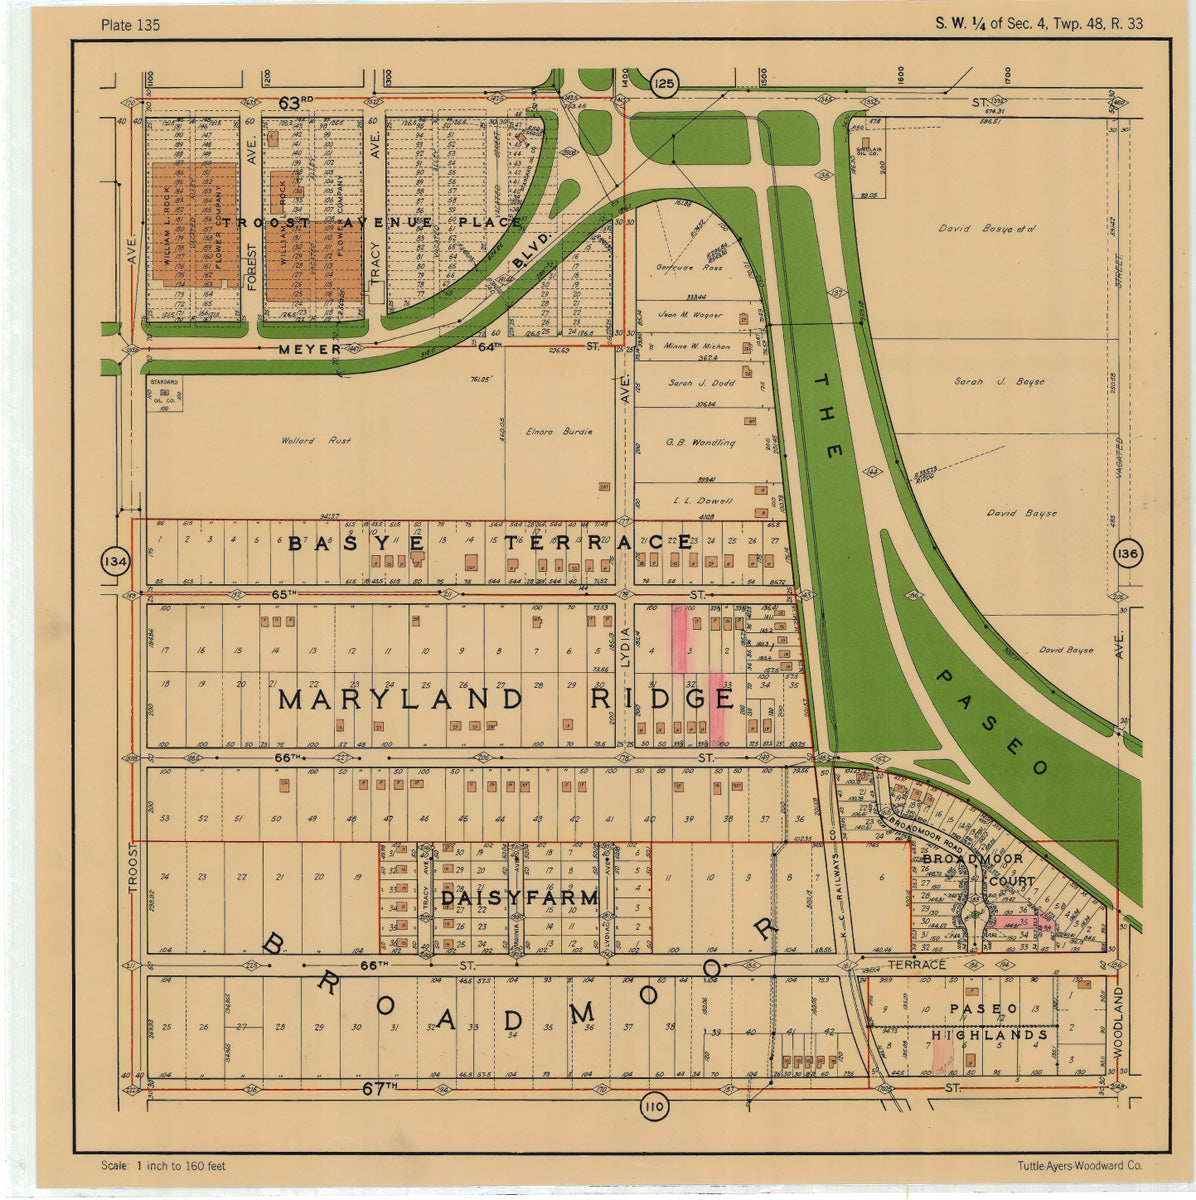 Kansas City 1925 Neighborhood Map - Plate #135 63rd-67th Troost-Woodland